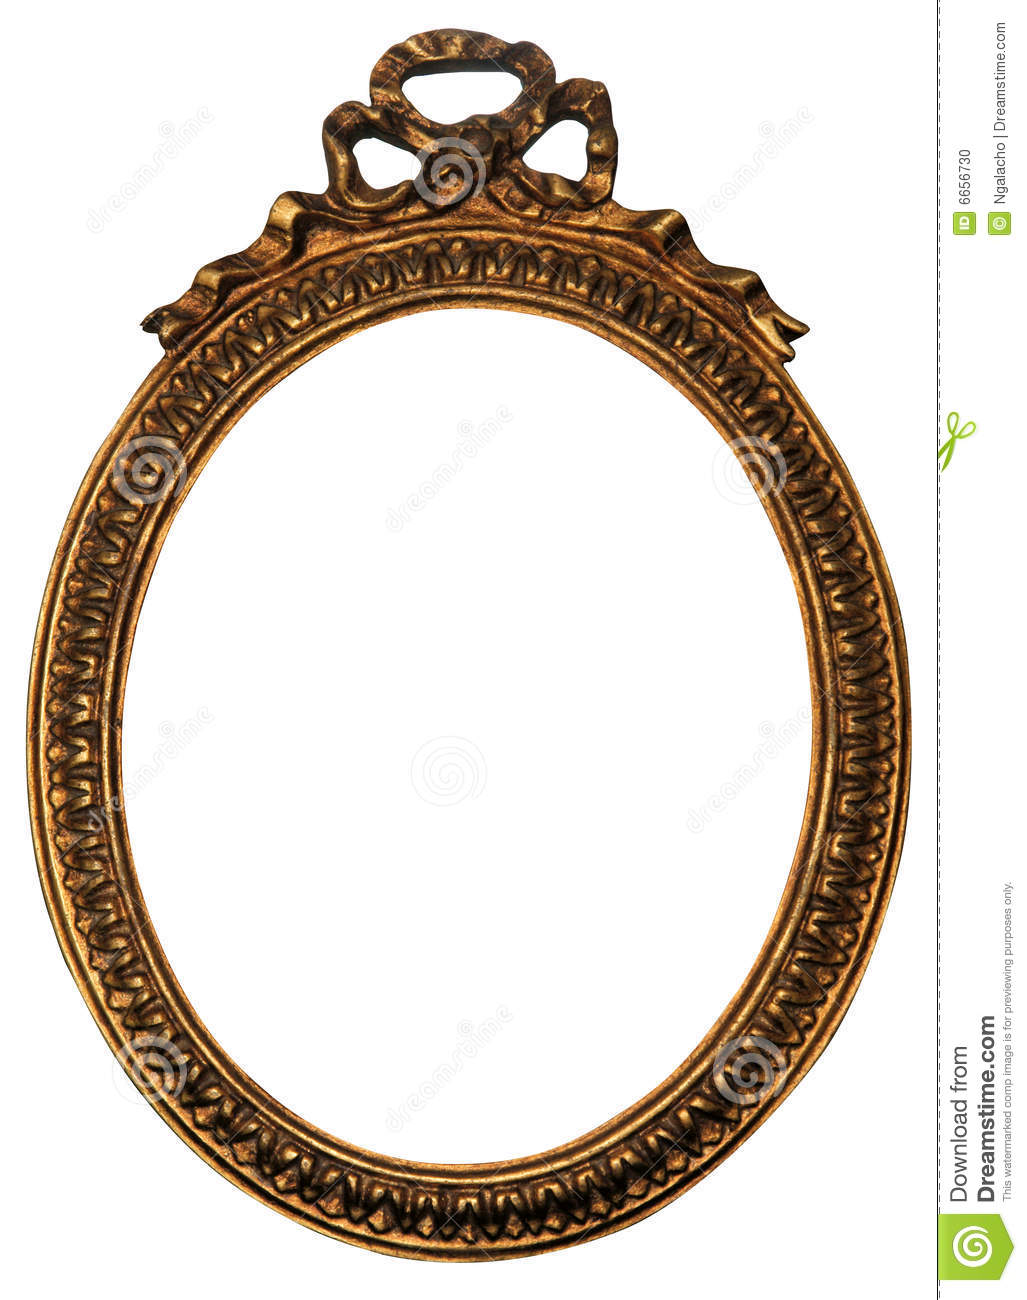 Oval gold frame clip art clipart panda free clipart images wood20picture20frame20clip20art jeuxipadfo Image collections